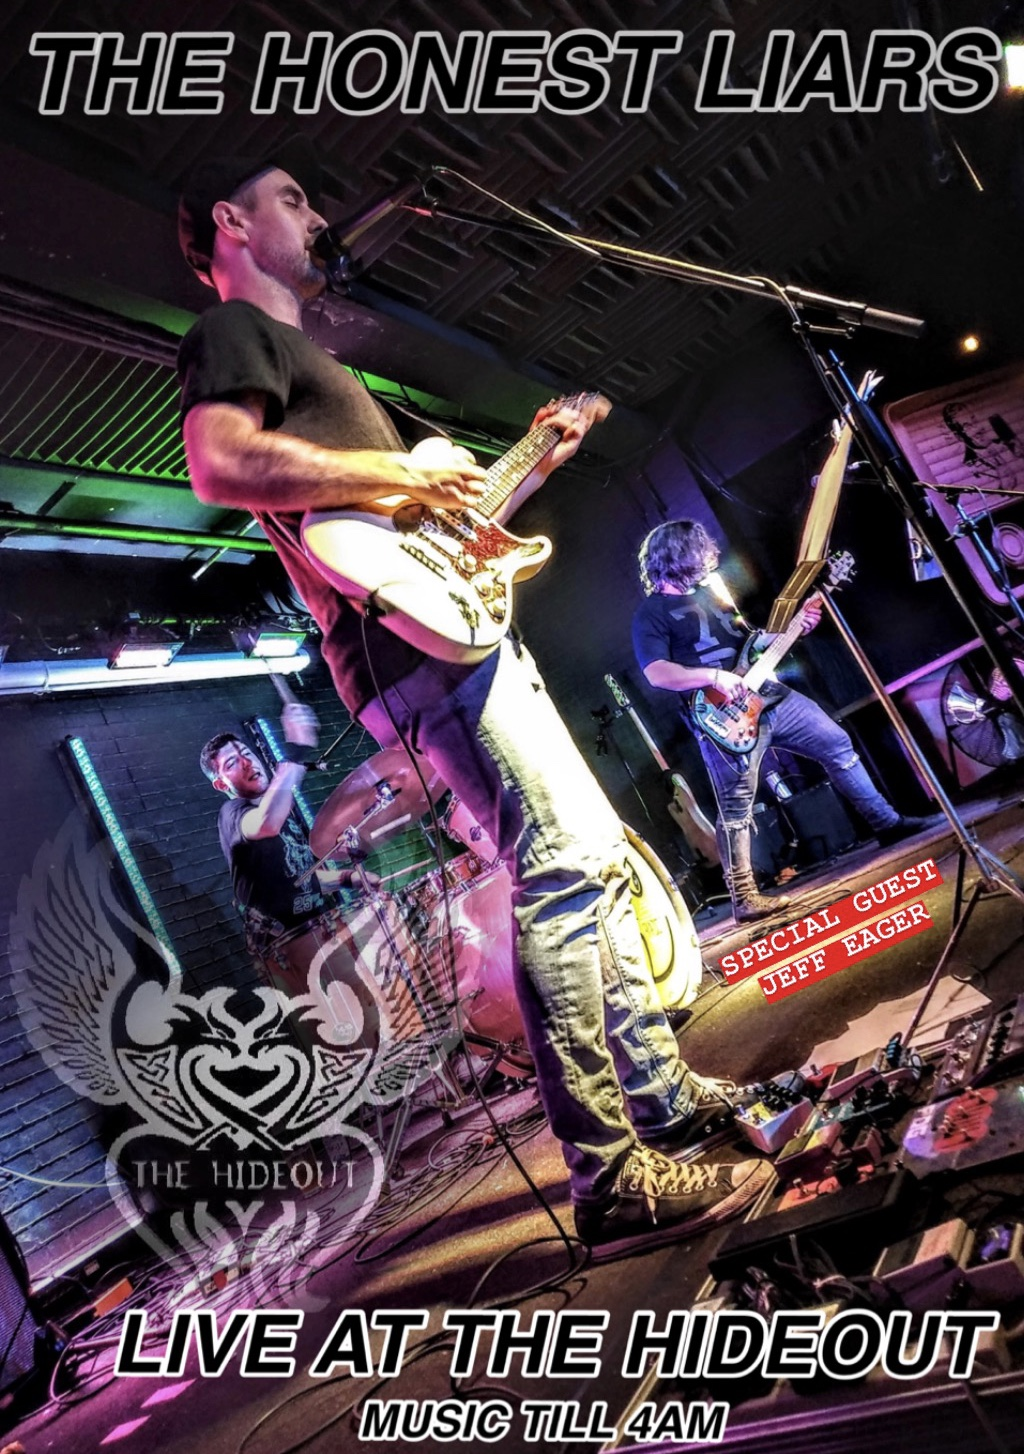 Join us tonight for some awesome live music from  The Honest Liars ! They take the stage at 11pm. Where they will be playing nothing but your favorite Rock N Roll covers. Special Guest  Jeff Eager !  MUSIC TILL 4AM!!